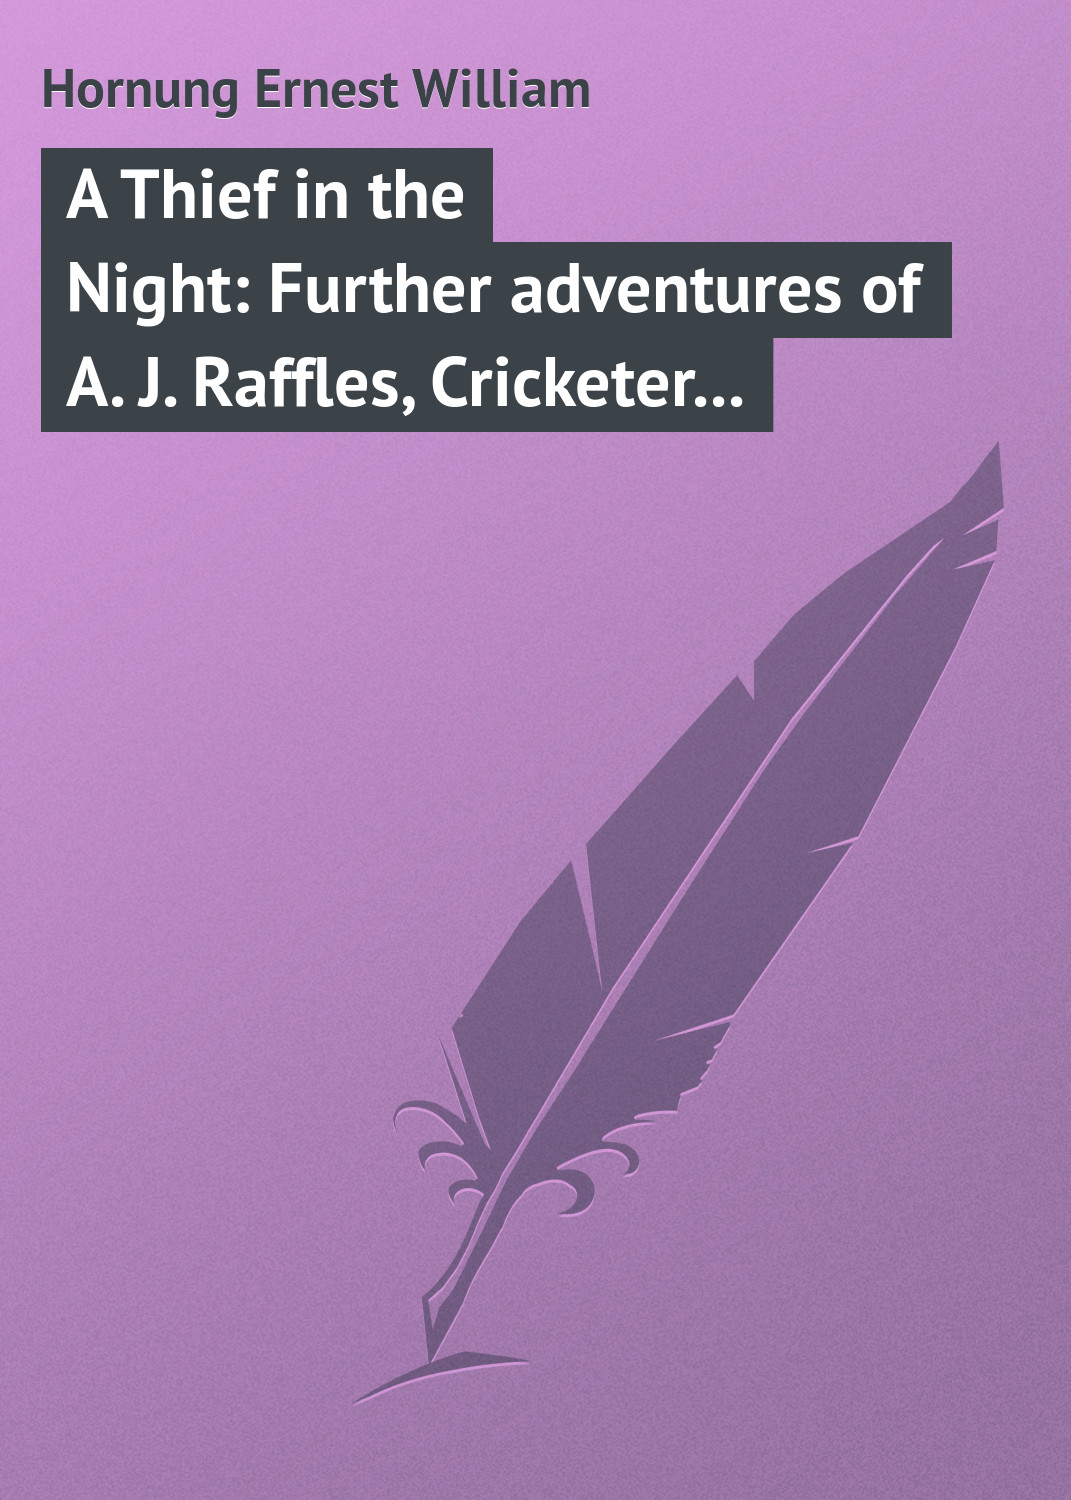 Hornung Ernest William A Thief in the Night: Further adventures of A. J. Raffles, Cricketer and Cracksman